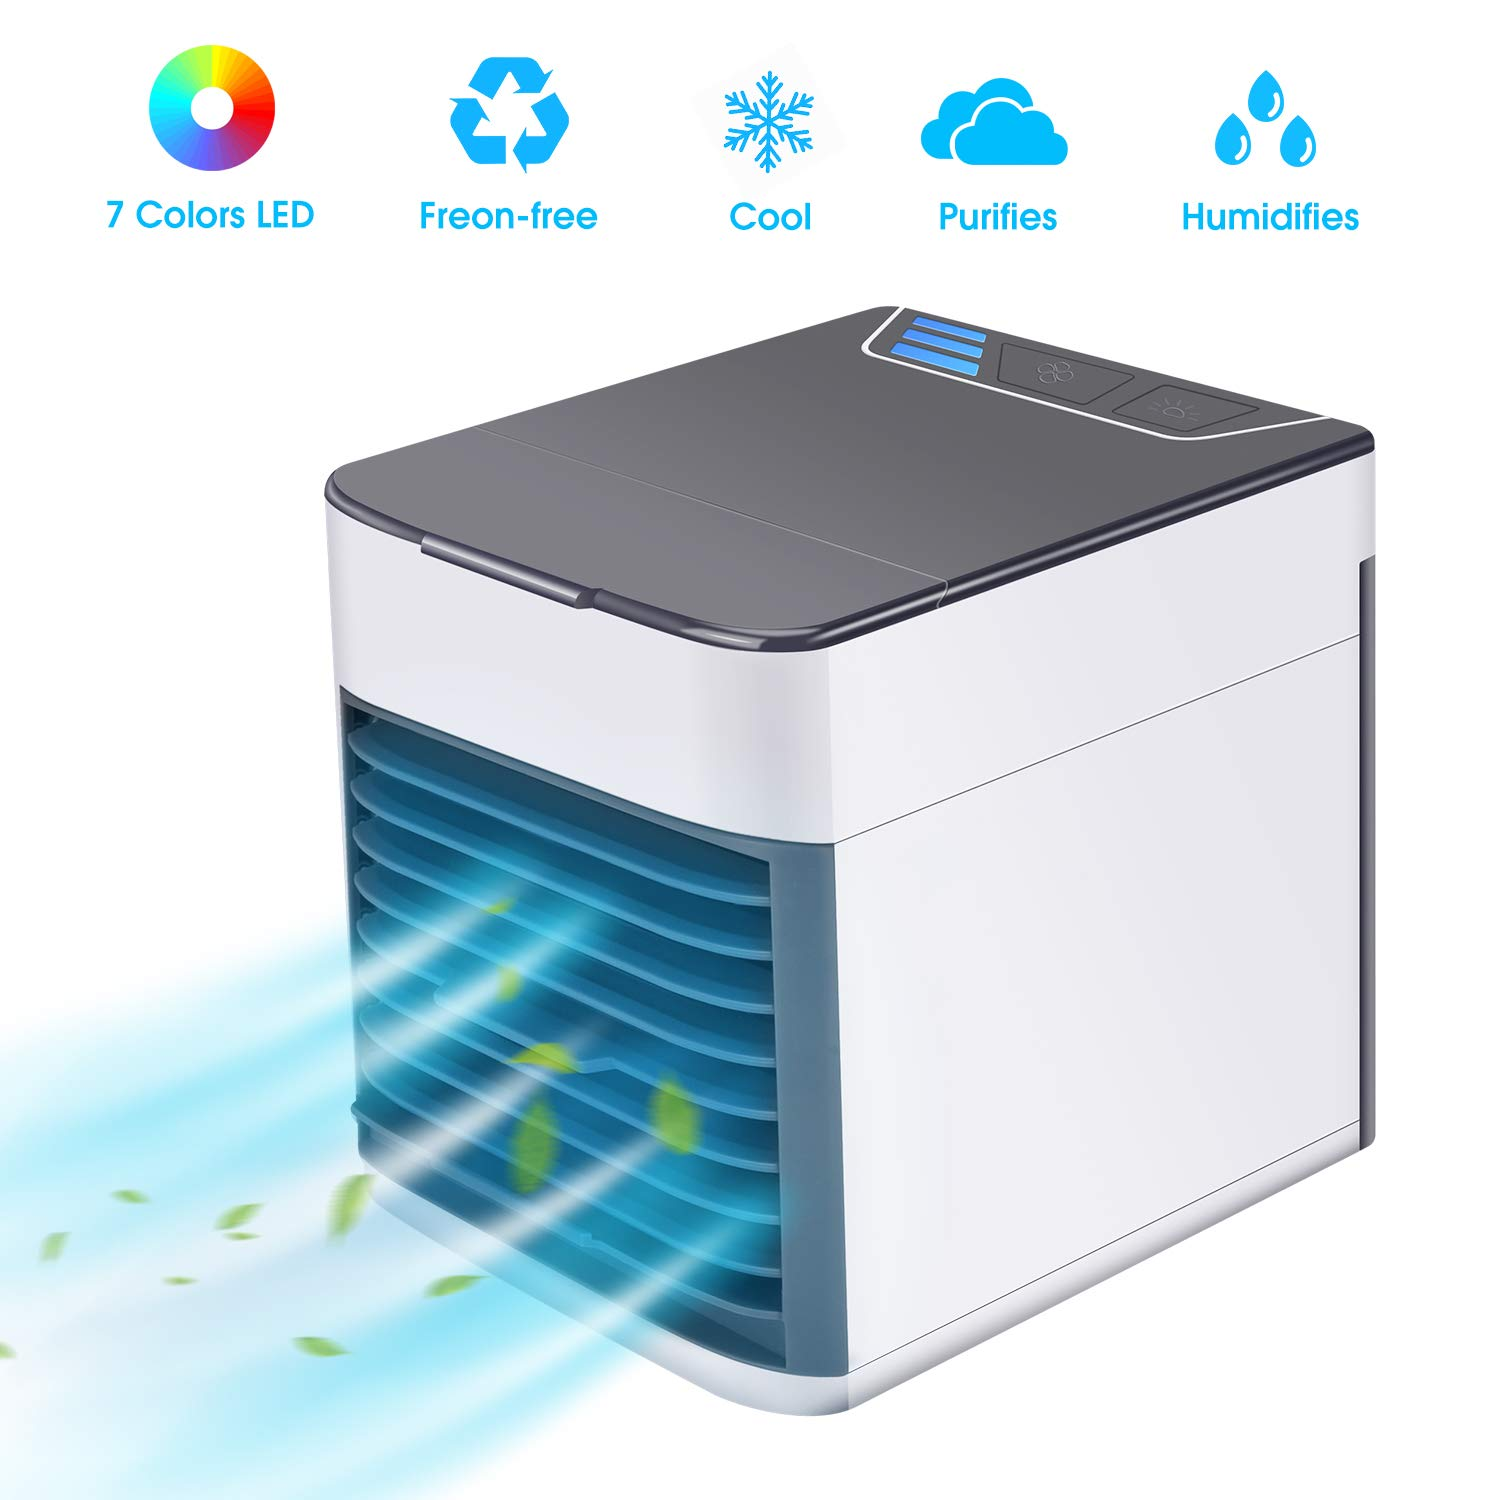 AUSHEN Personal Air Cooler,Mini Air Conditioner Fan Personal Space Cooler and Humidifier